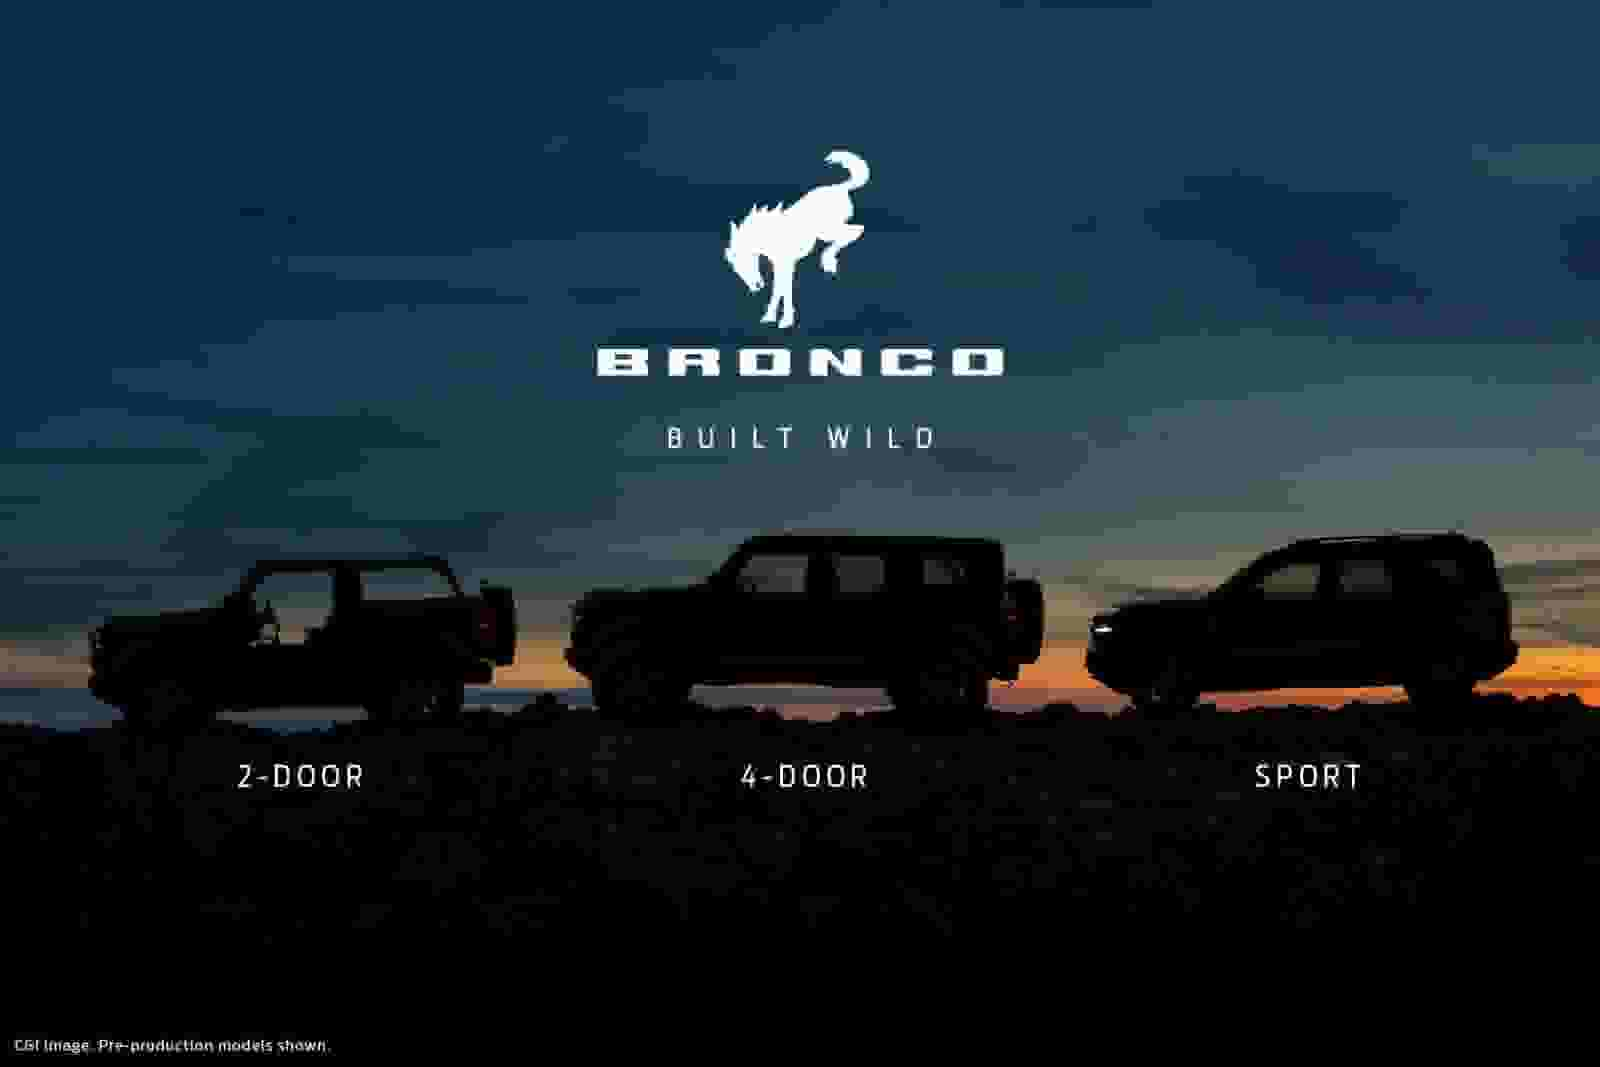 Adventure Awaits in the New Ford Bronco